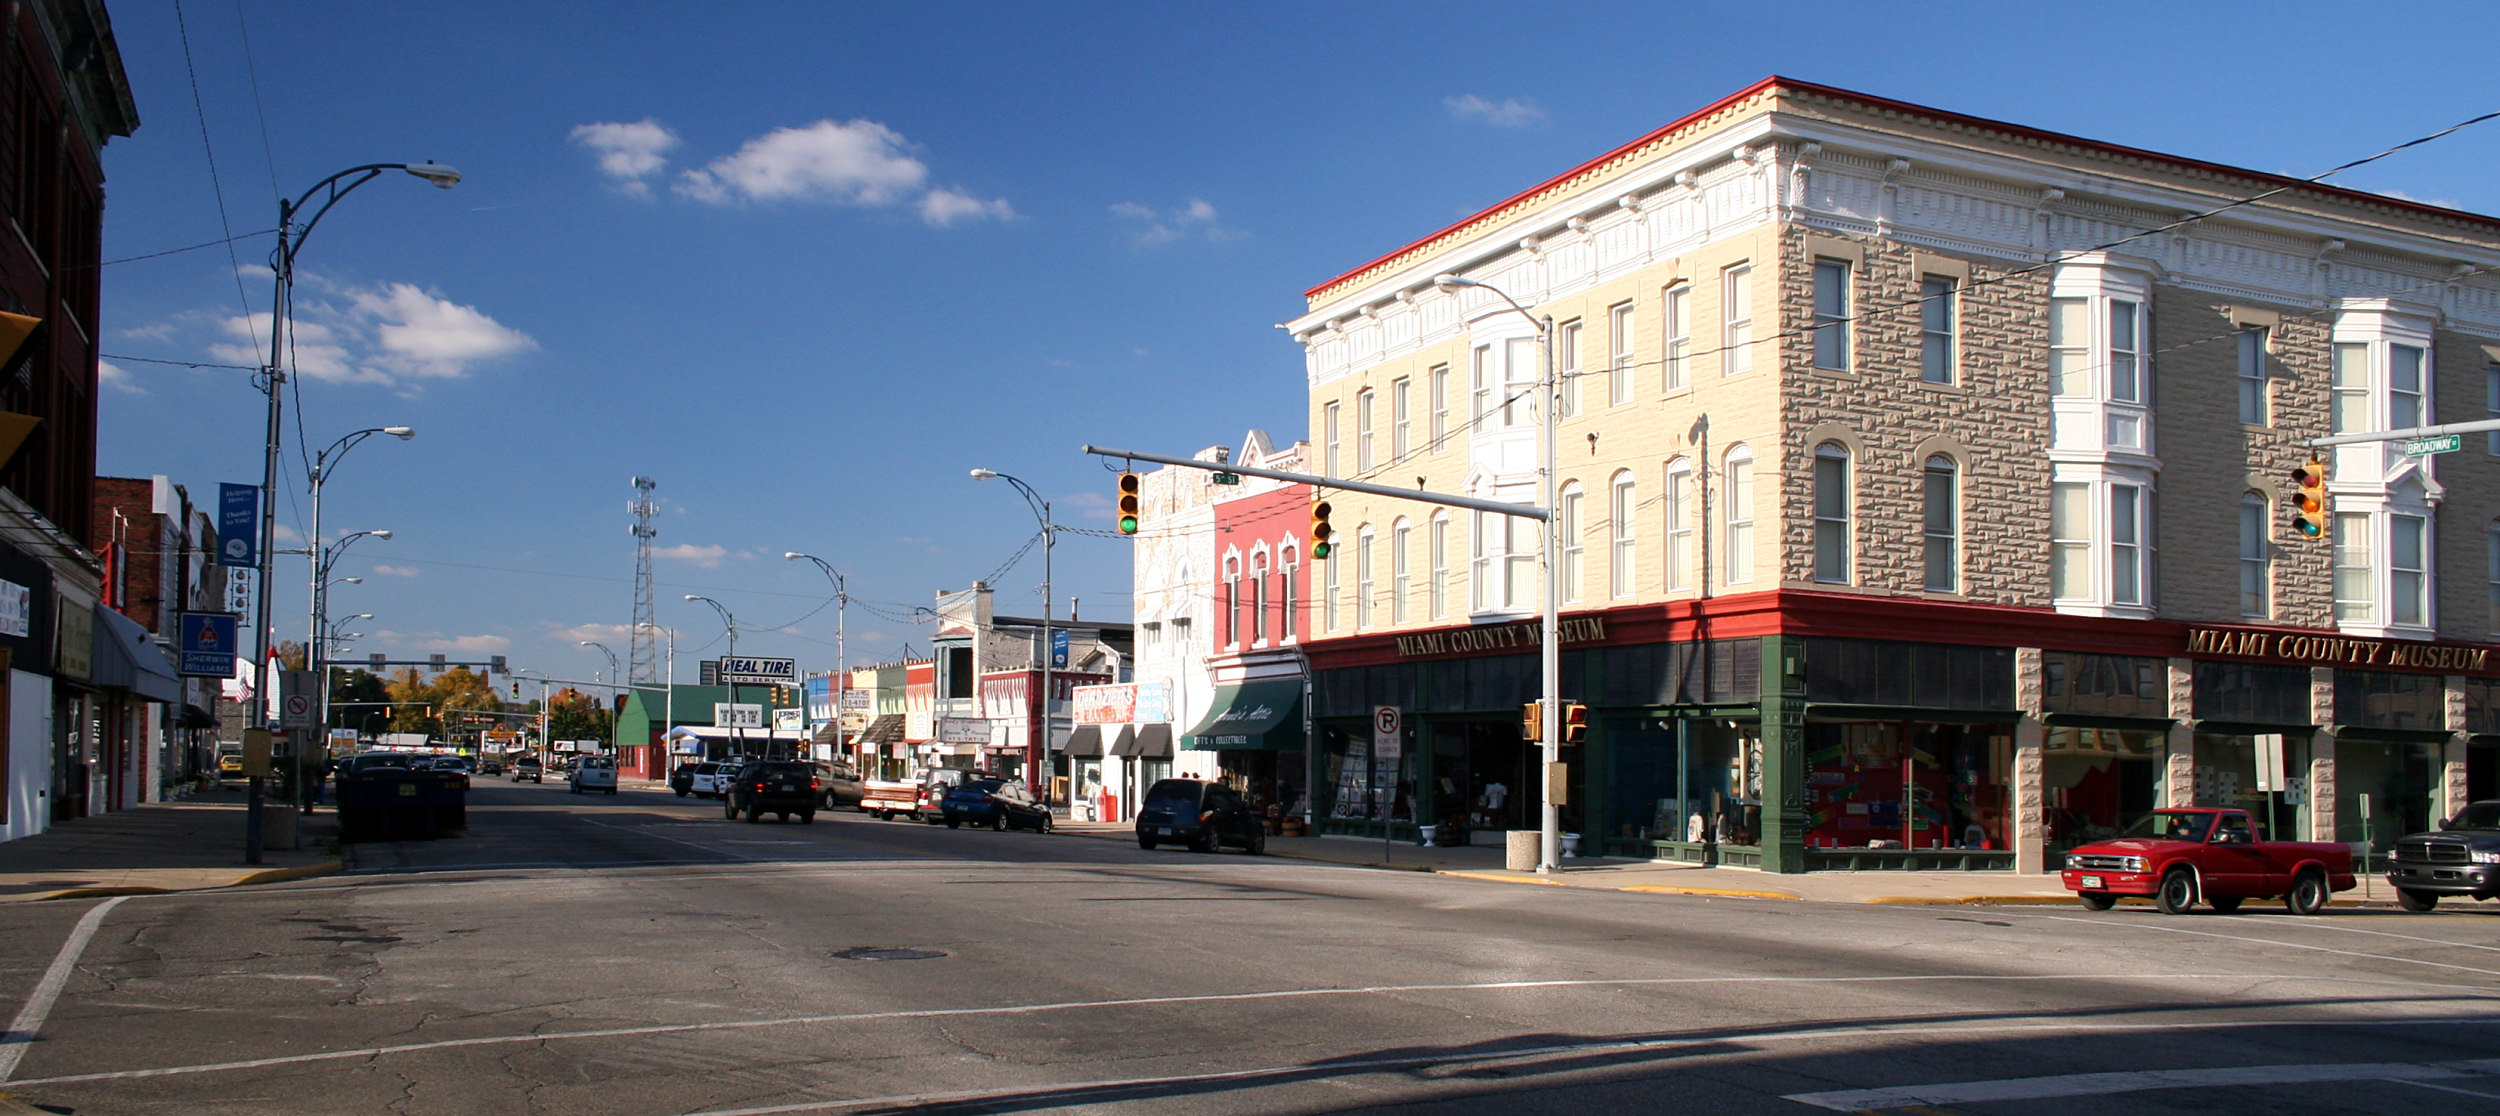 Peru Indiana Pictures To Pin On Pinterest PinsDaddy - Map of miami county indiana